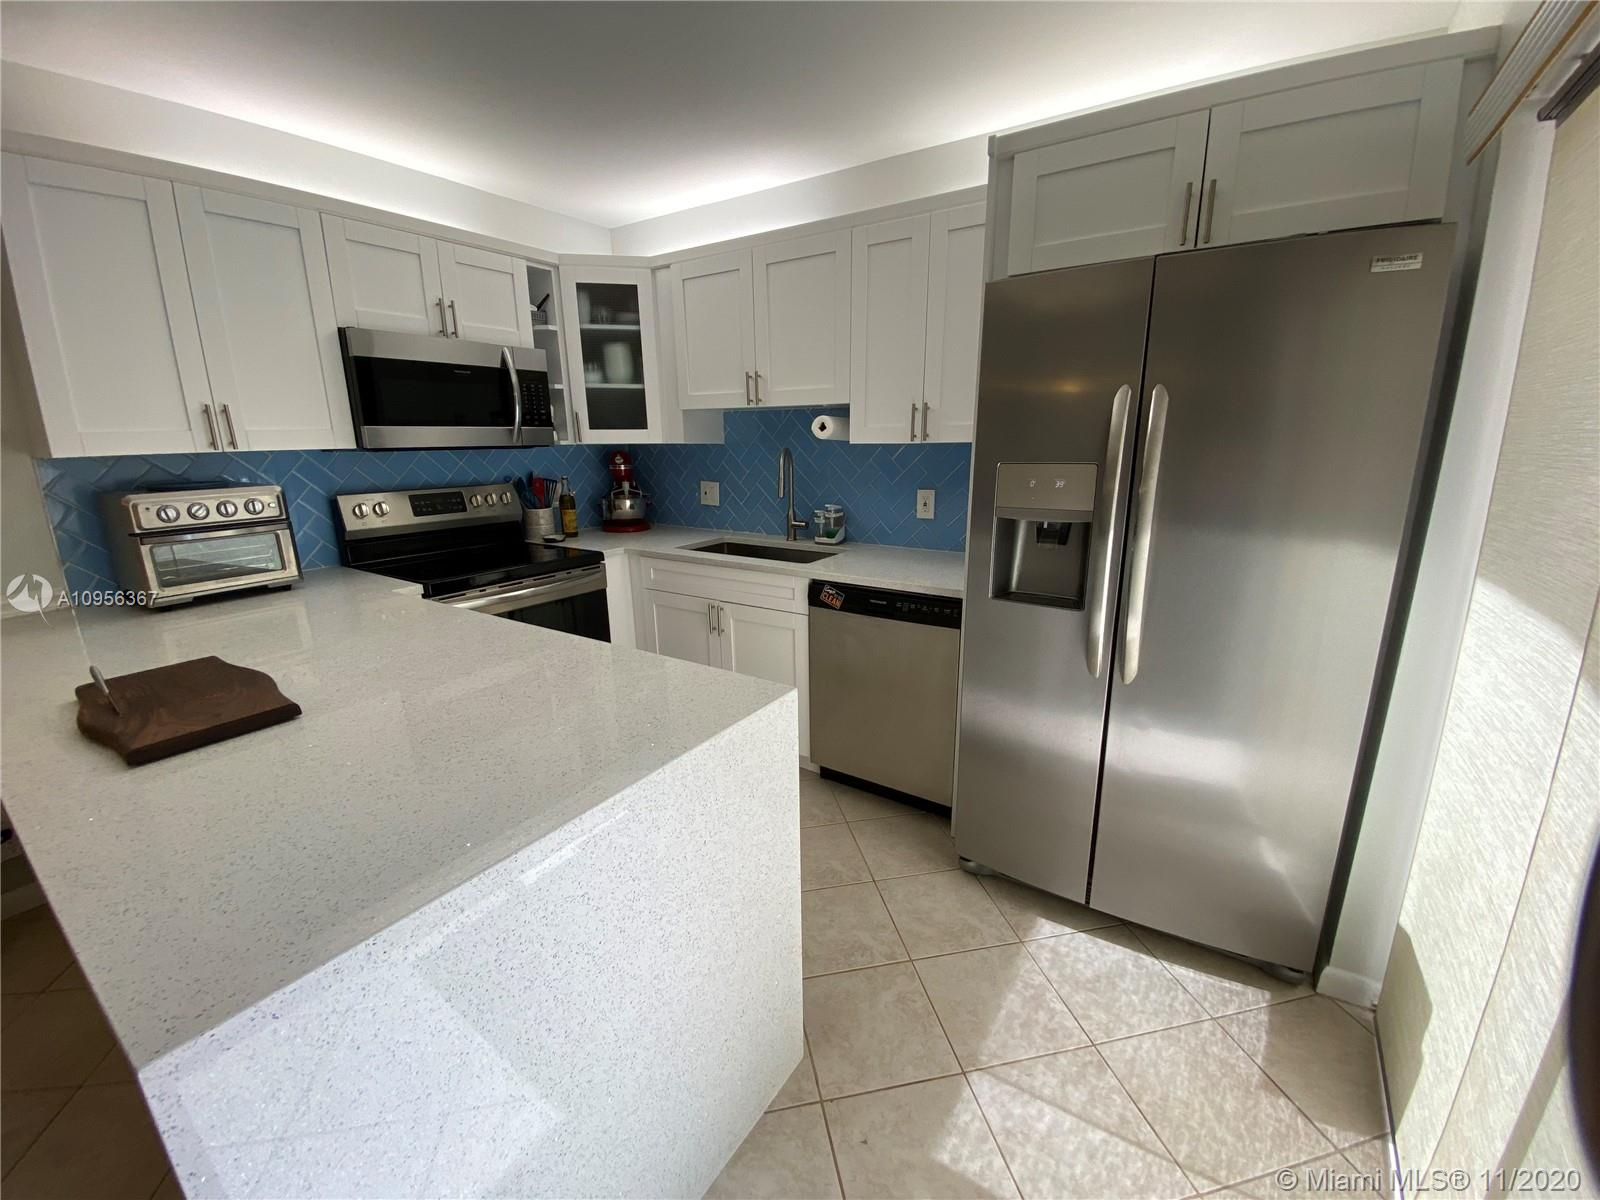 Great 2/2.5 all ages Townhouse @ the Waterford Deerfield. Minutes away from I-95/ Turnpike and Sawgrass Expressway.  Recently remodeled Kitchen with Quartz countertop and New Stainless Steel Appliances.  Just remodeled Guest Bathroom, all tile downstairs, Laminate floors on second story. Full size Washer and Dryer, Accordion Shutters, 2 parking spaces